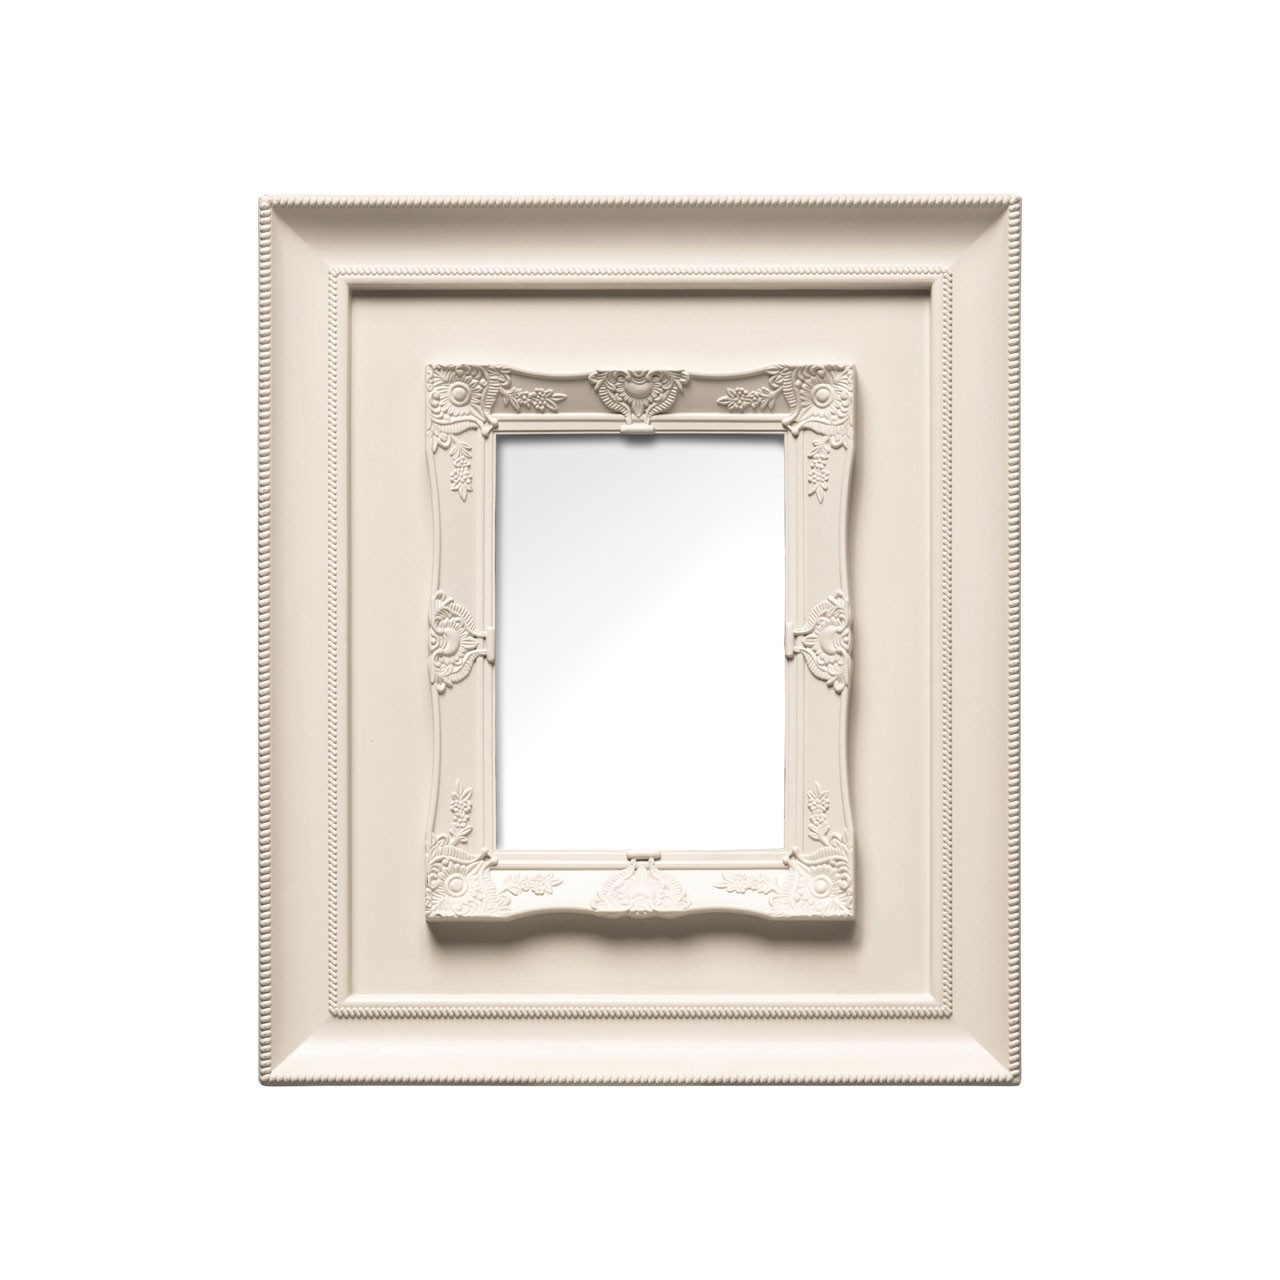 "Prime Furnishing Photo Frame, 5 x 7"" - Cream"